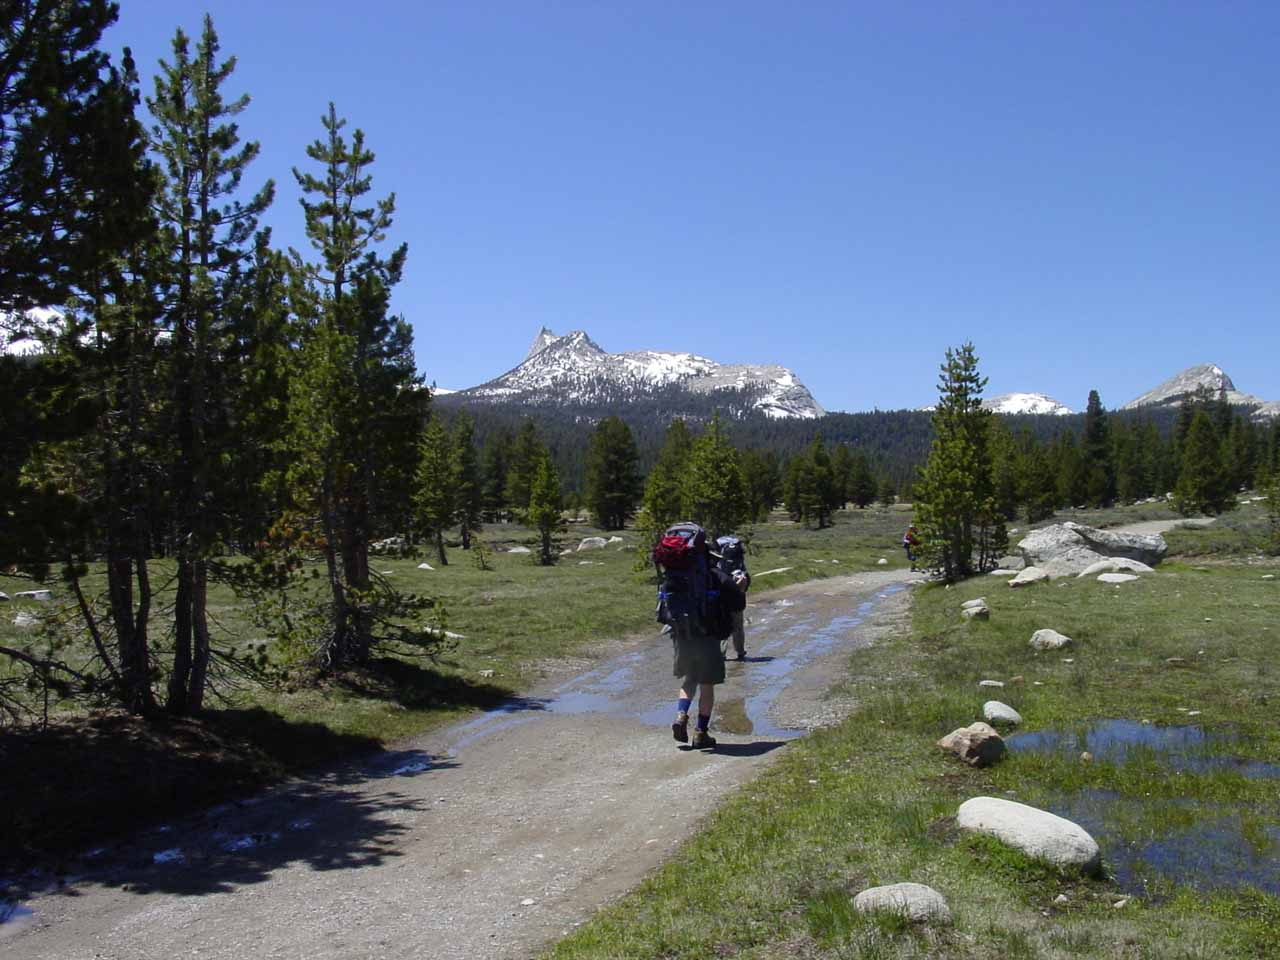 We were actually intending to backpack to the Glen Aulin High Sierra Camp, hence the large packs we were carrying